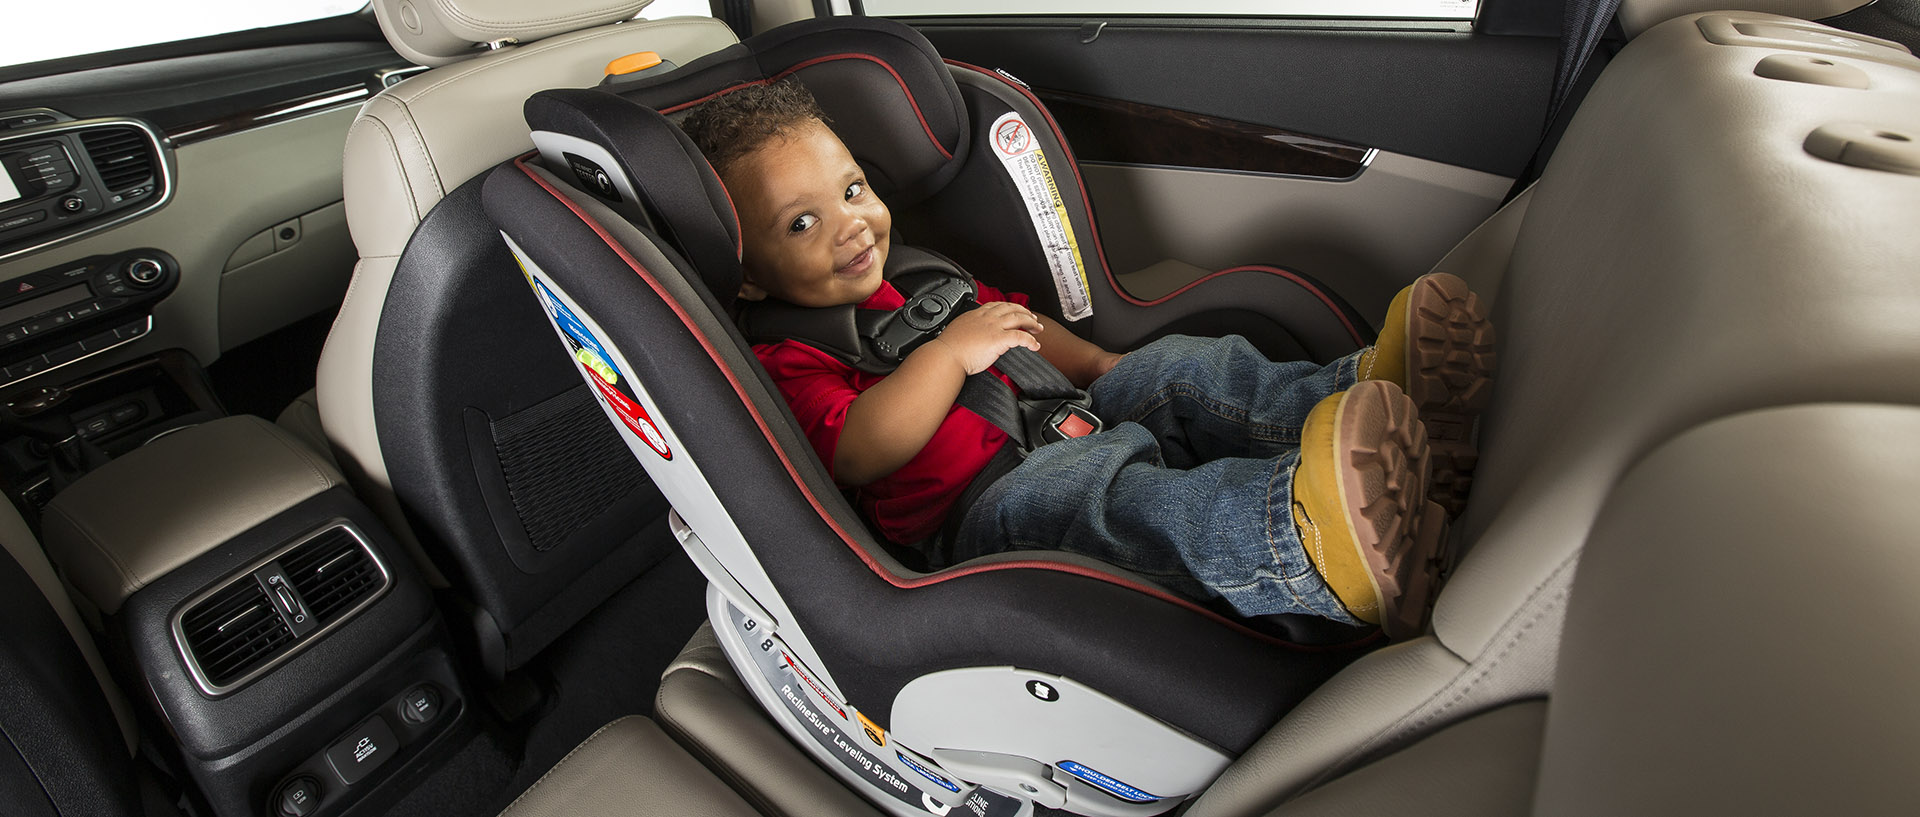 Convertible Car Seat Consumer Reviews